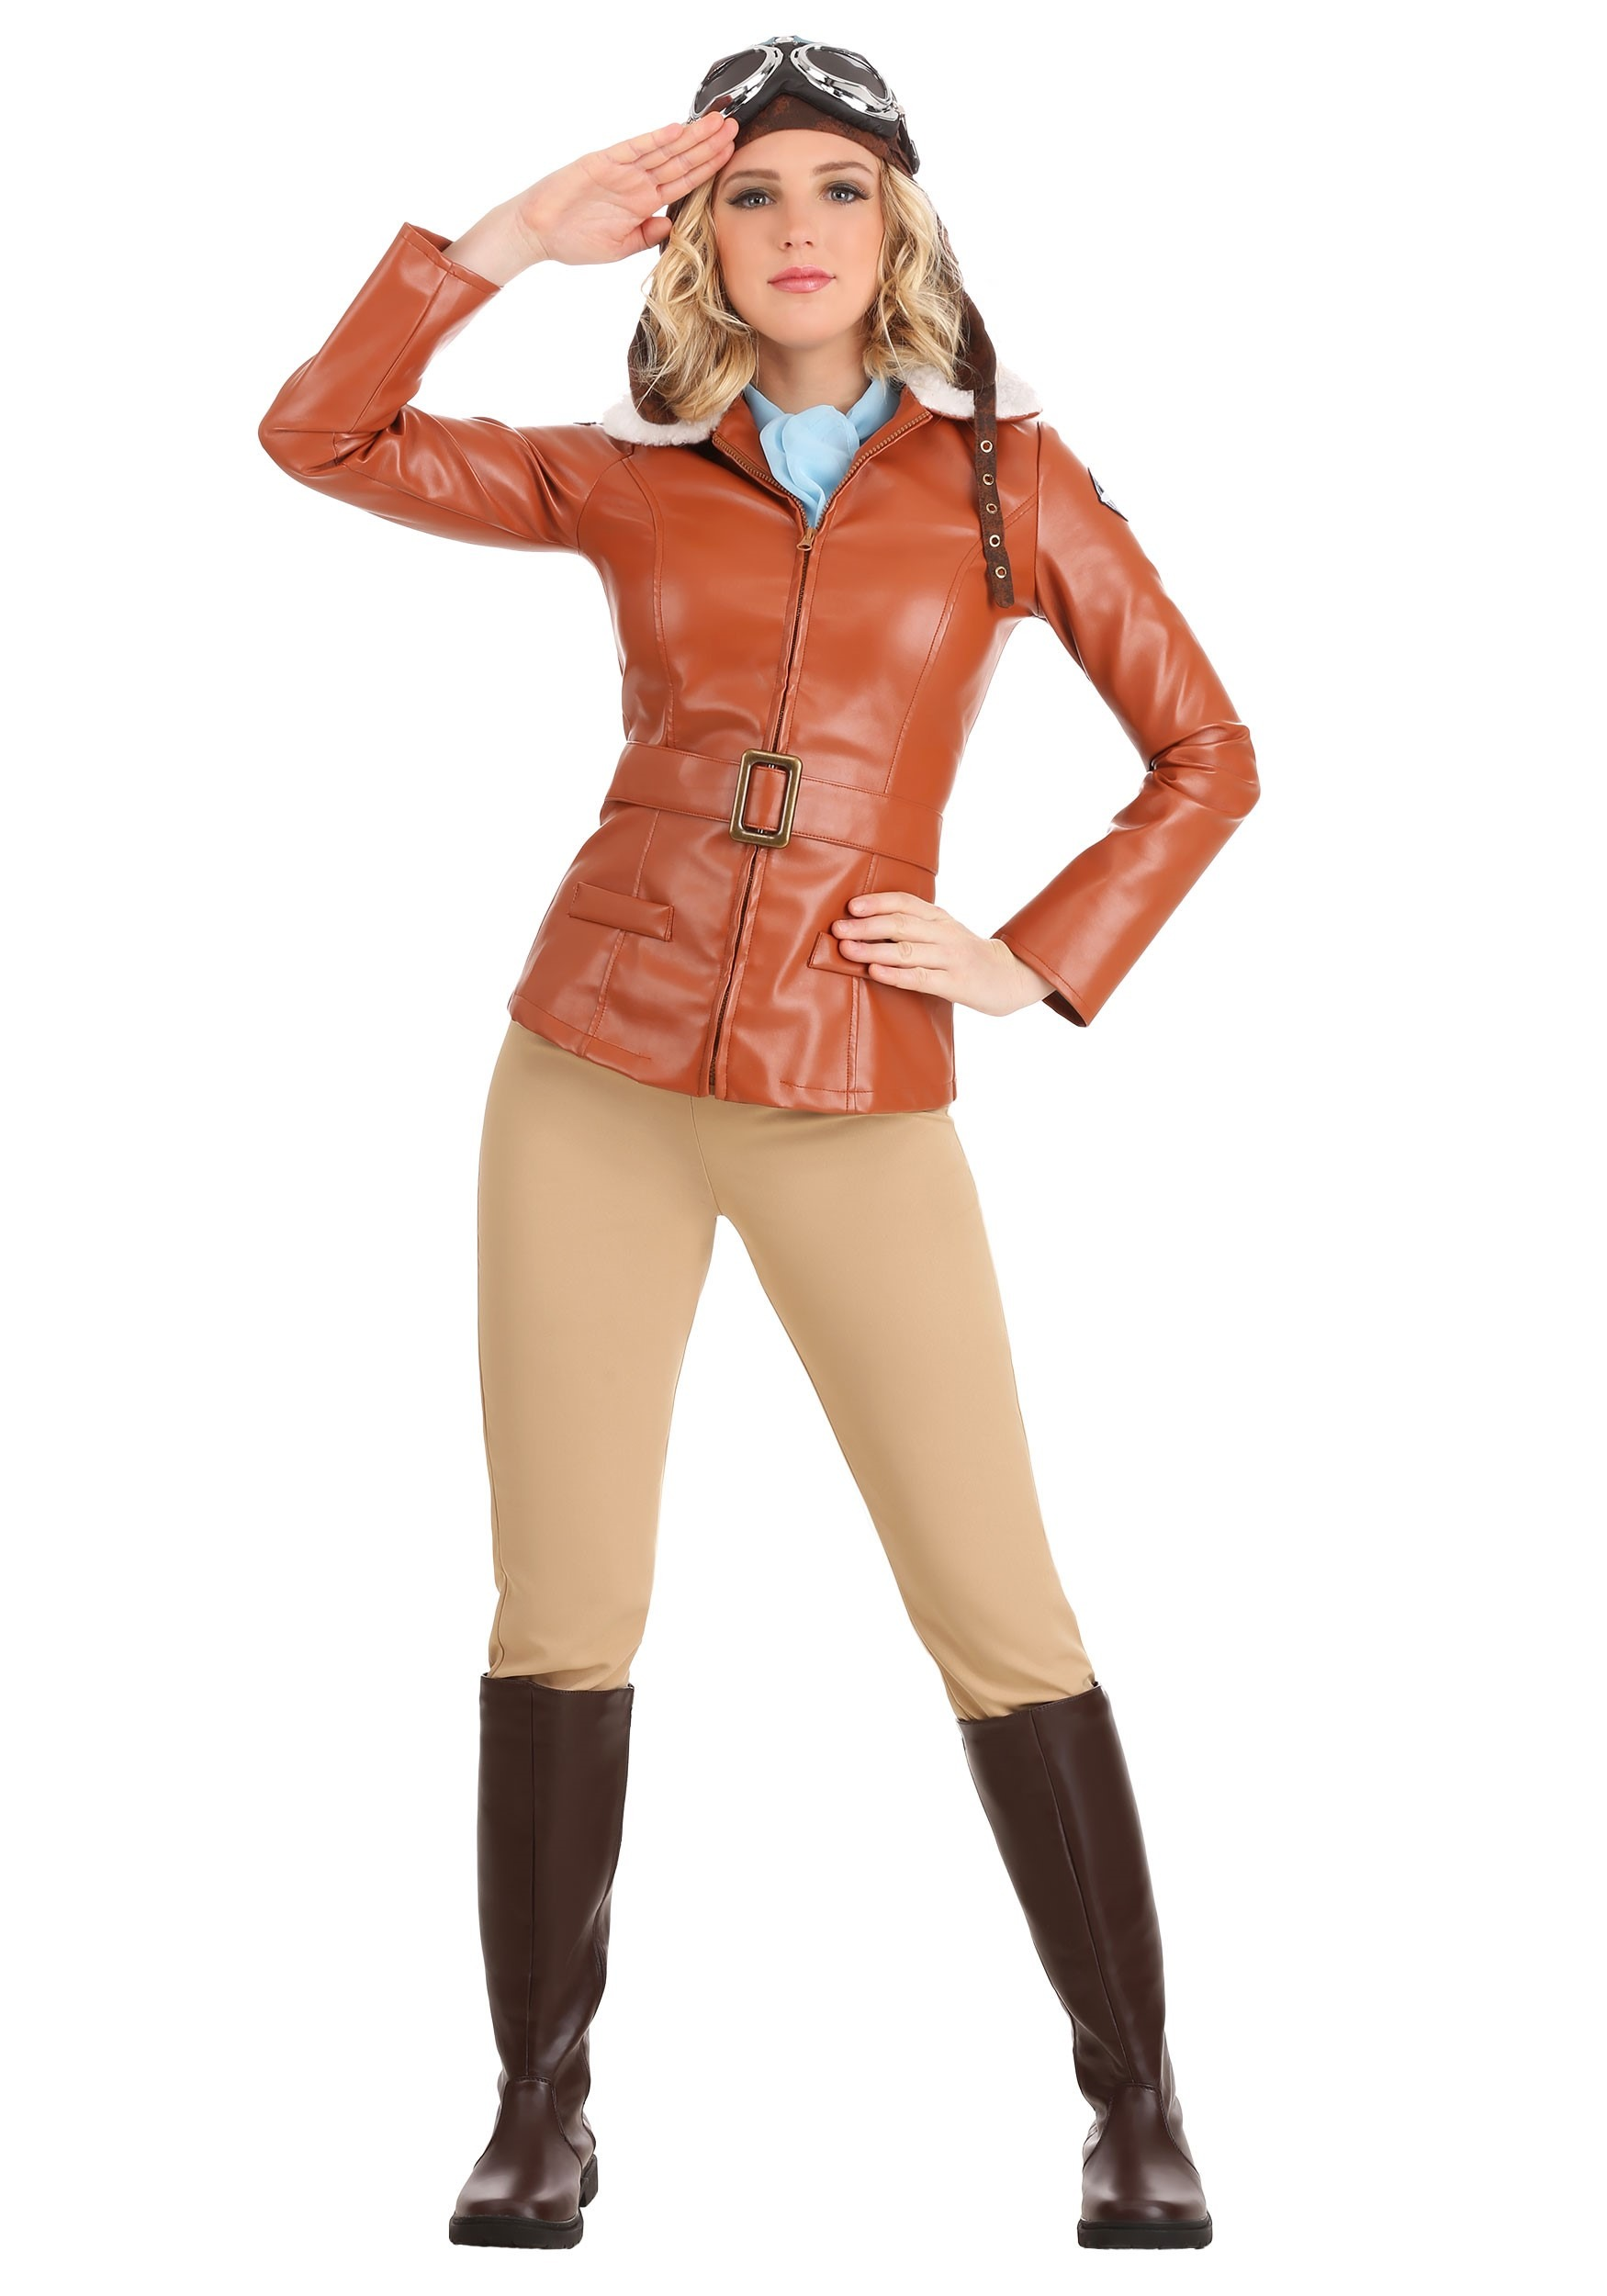 Deluxe Amelia Earhart Costume for Women